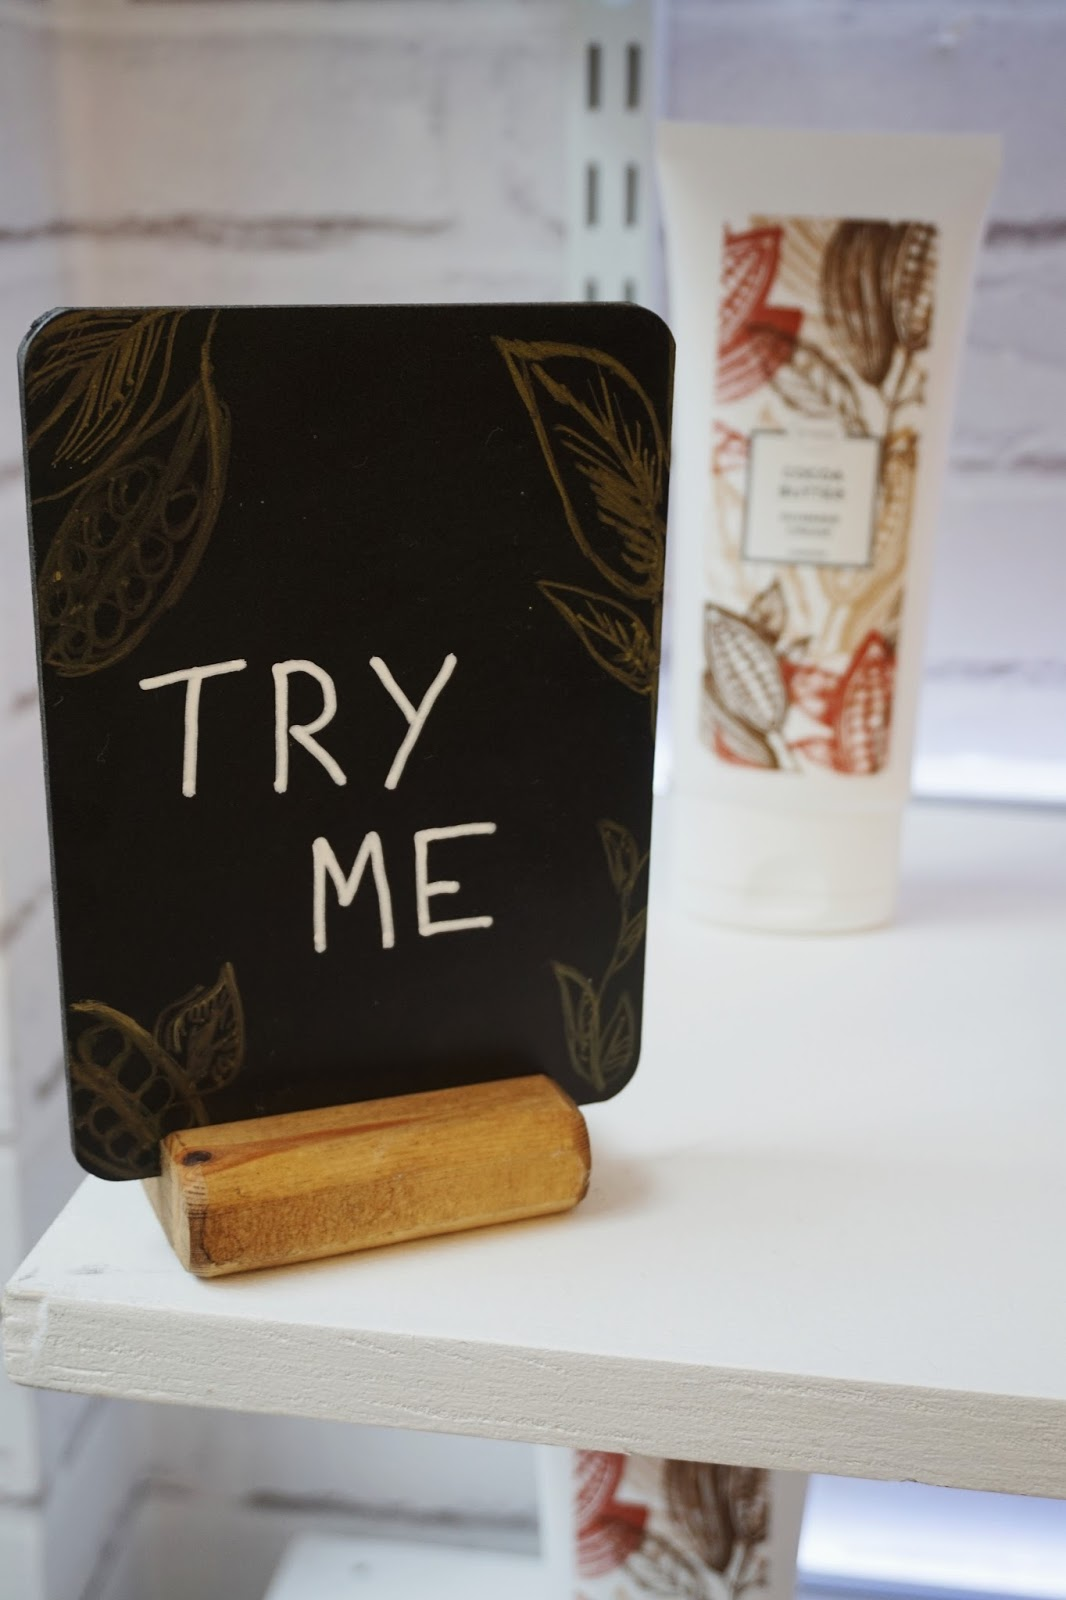 Try Me signs were placed around the Eness Cosmetics store at the blogger event